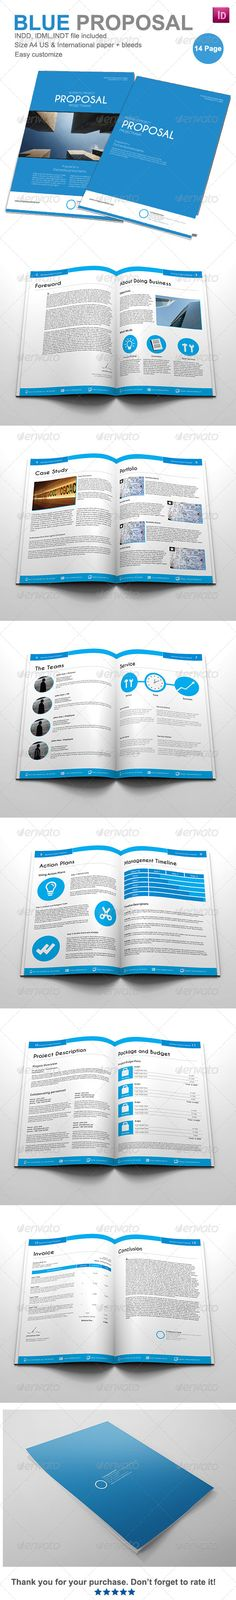 Business Proposal Template Proposals, Invoice template and - best proposal templates